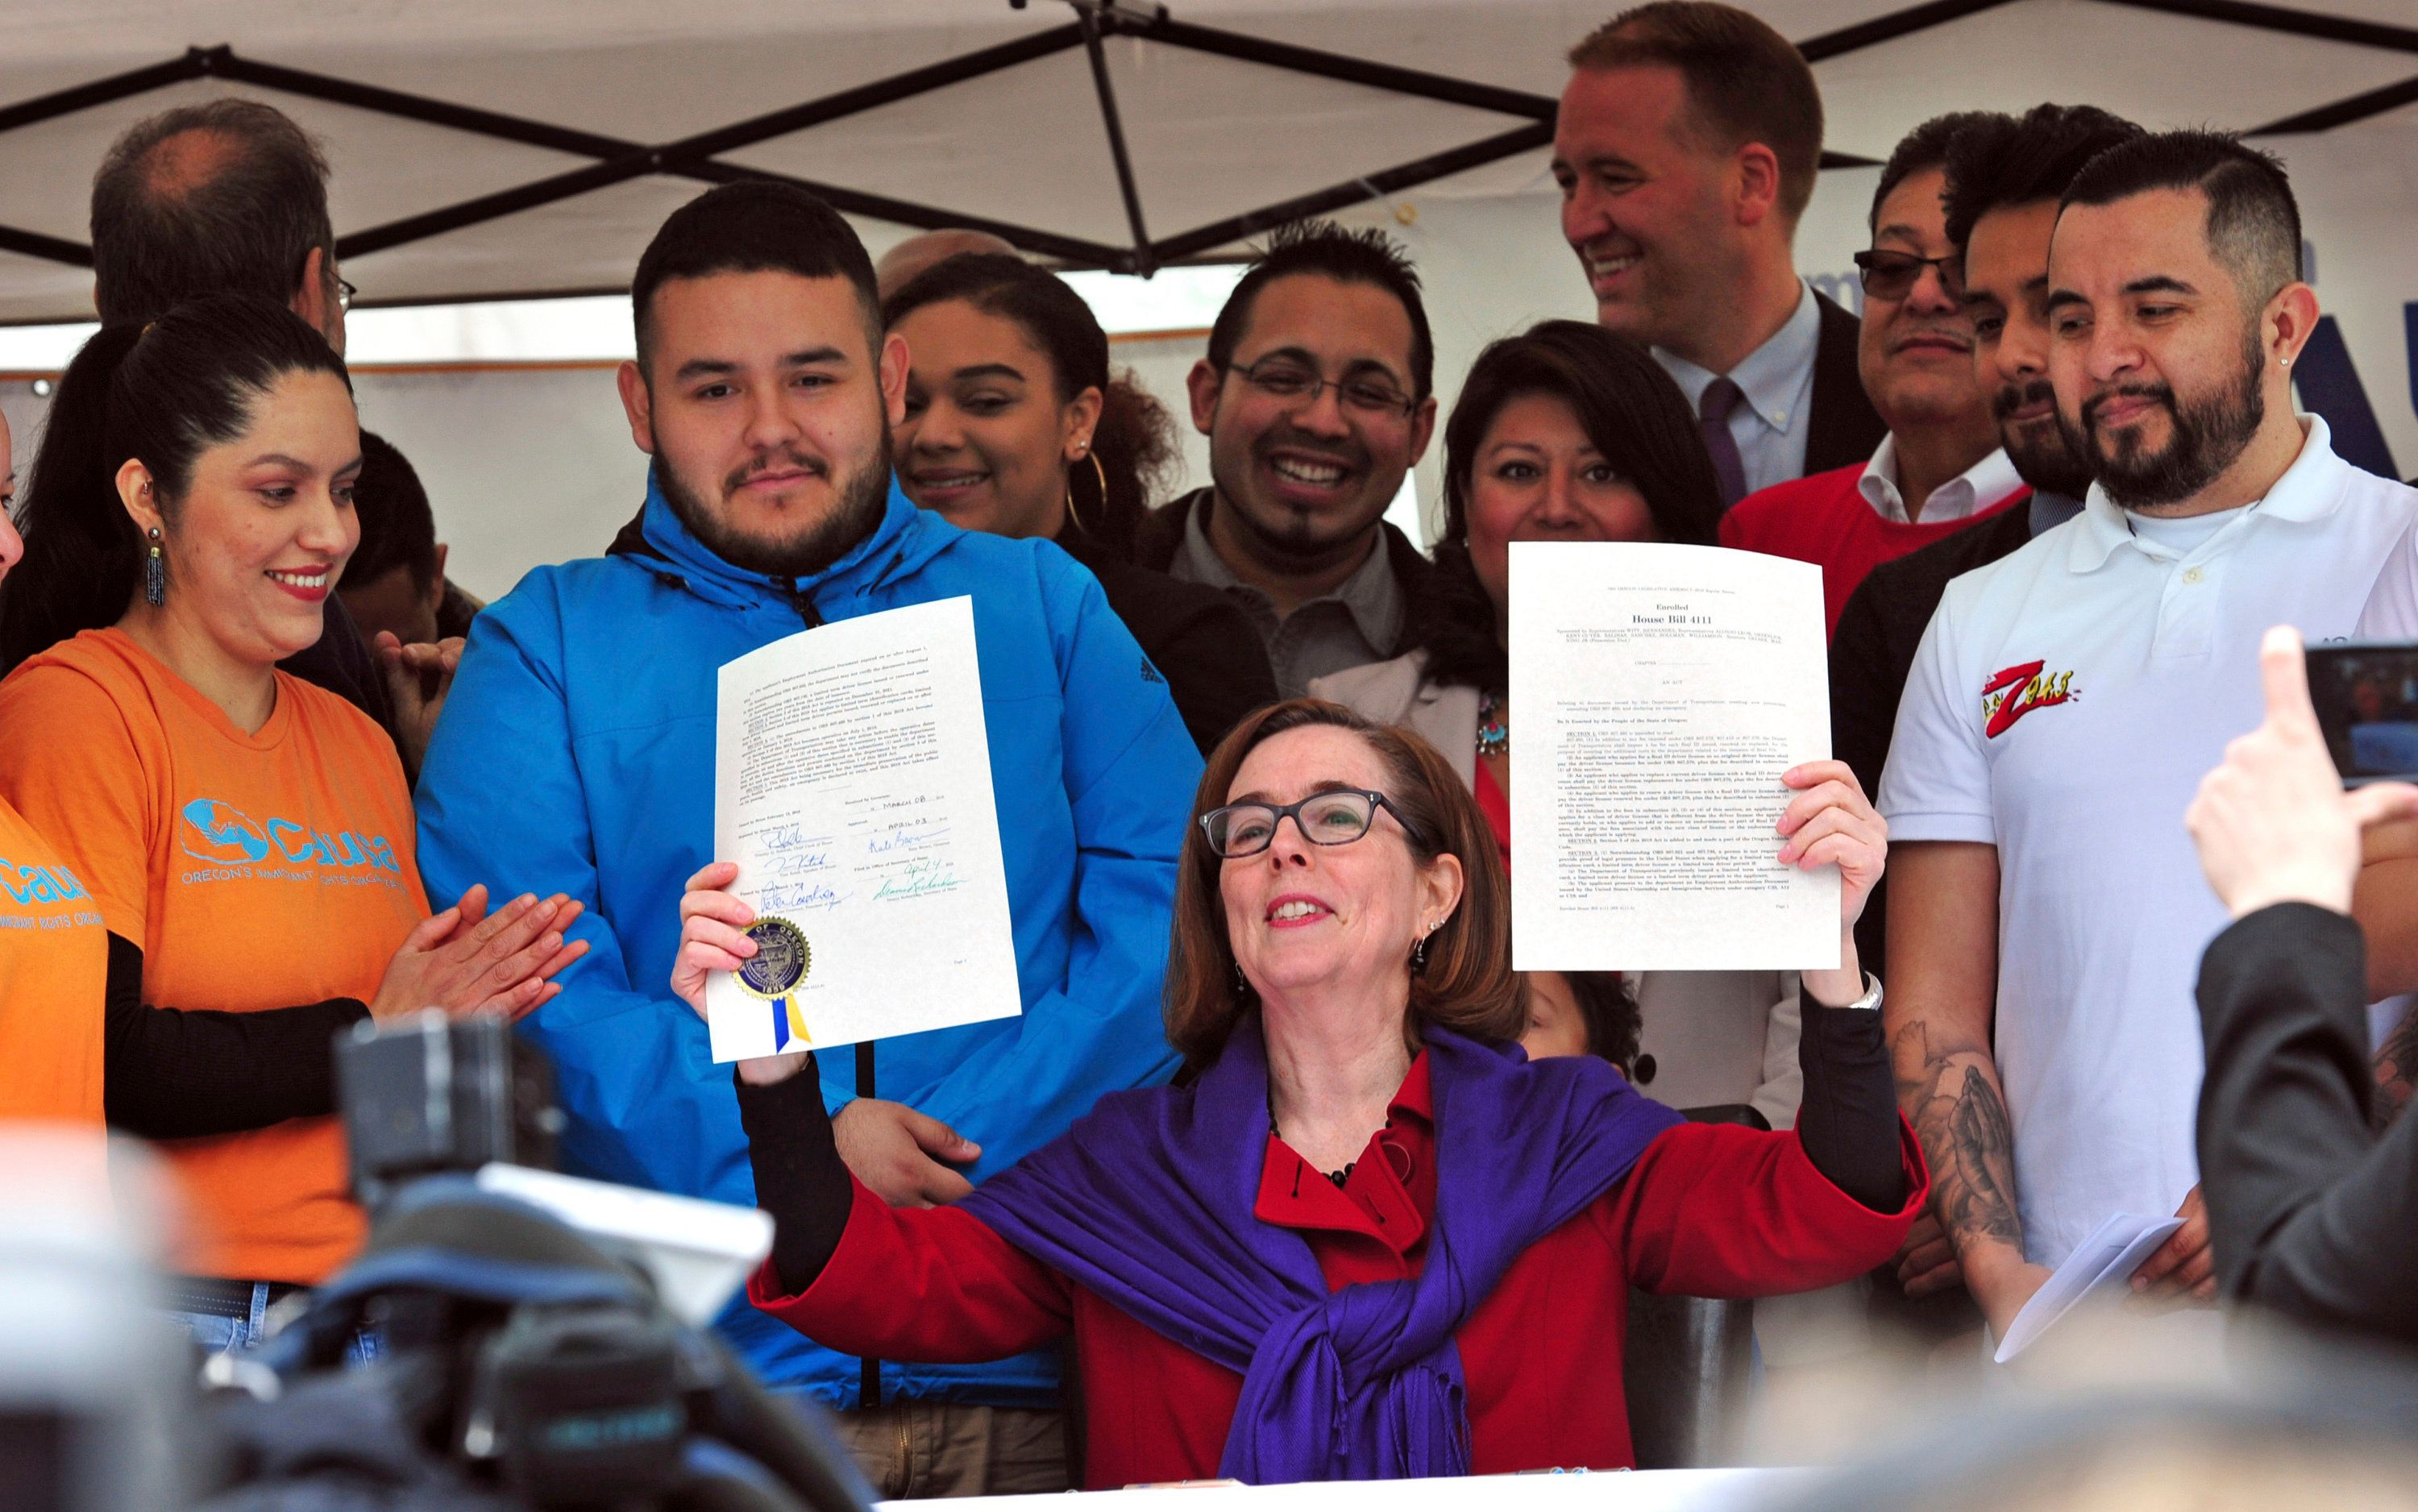 Oregon Gov. Kate Brown holds up a ceremonial copy of an immigration-related bill during a May Day rally at the steps of the state Capitol in Salem on Tuesday, May 1, 2018. A crowd of about 300 assembled for the rally and a subsequent march through downtown Salem. (AP Photo/Tom Tait)